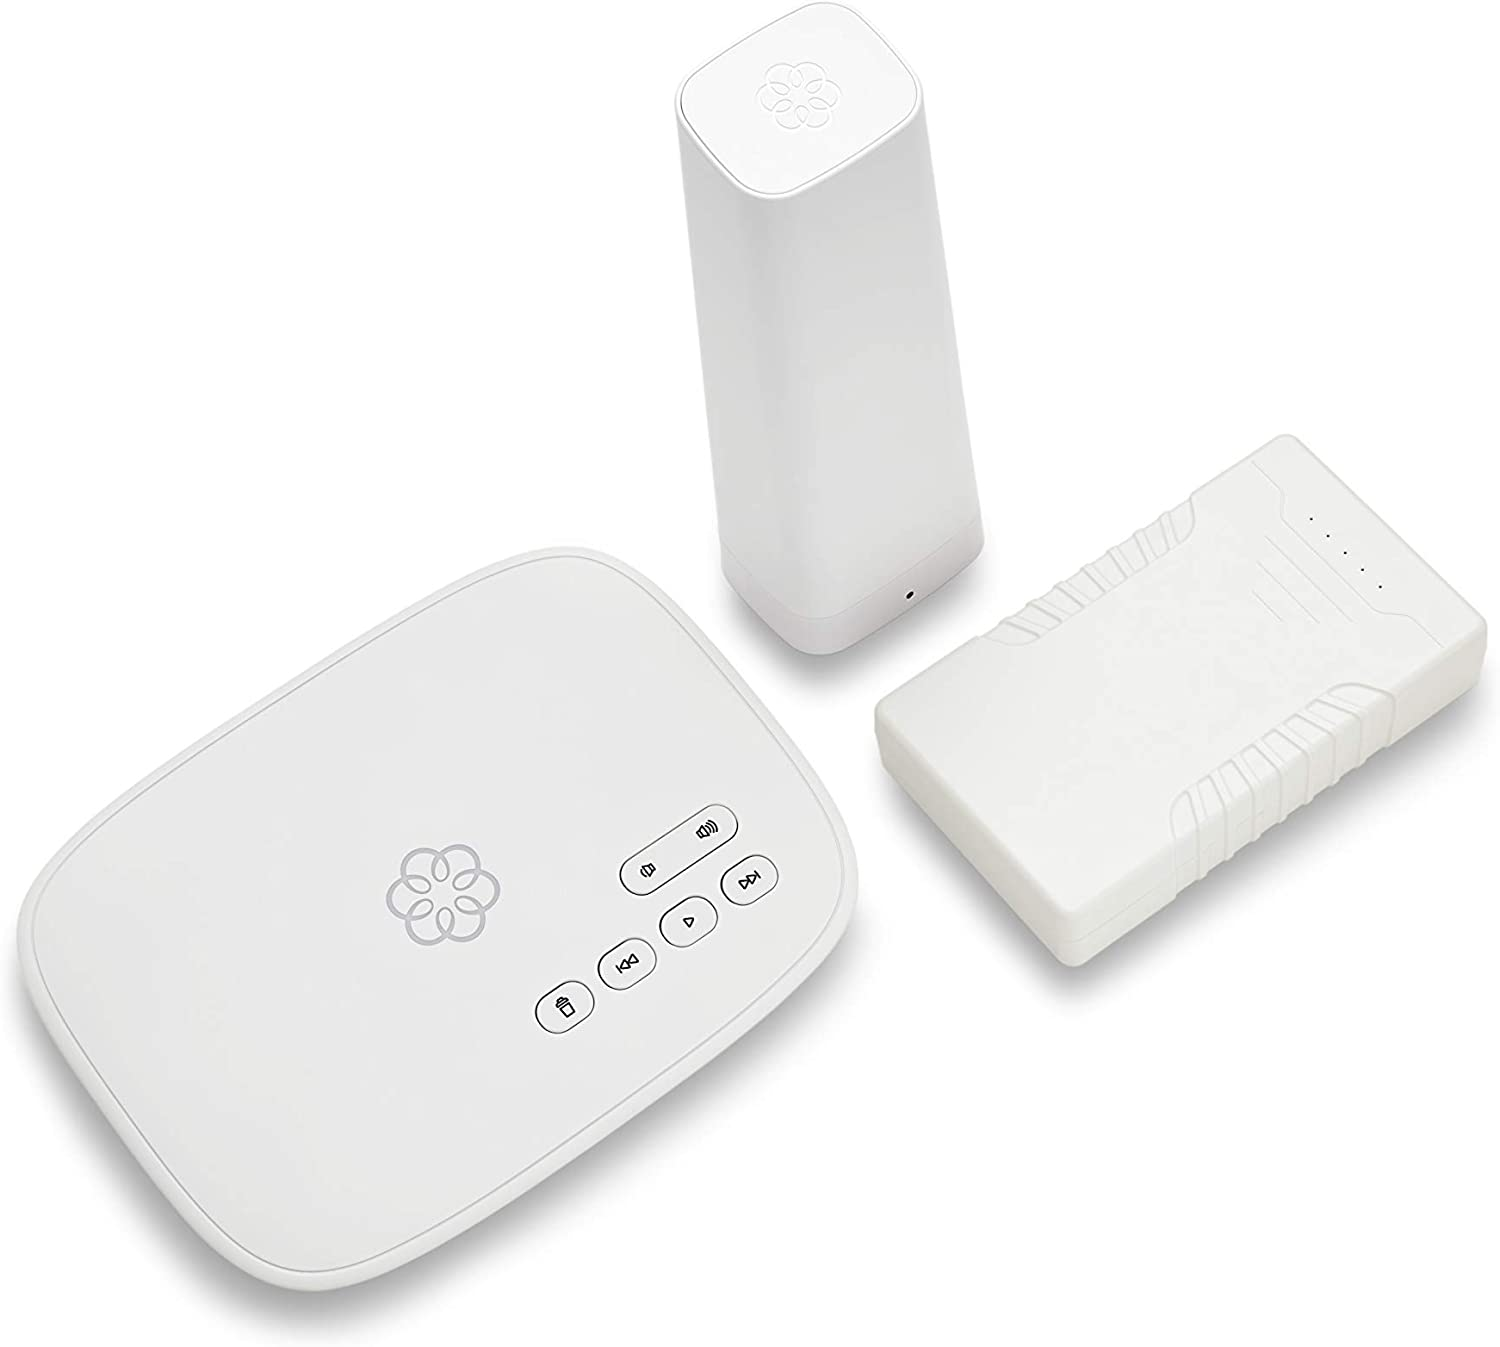 Ooma Telo 4G VoIP Home Phone. Works During outages, Whether Power or Internet. Affordable landline Replacement. Can Block robocalls.